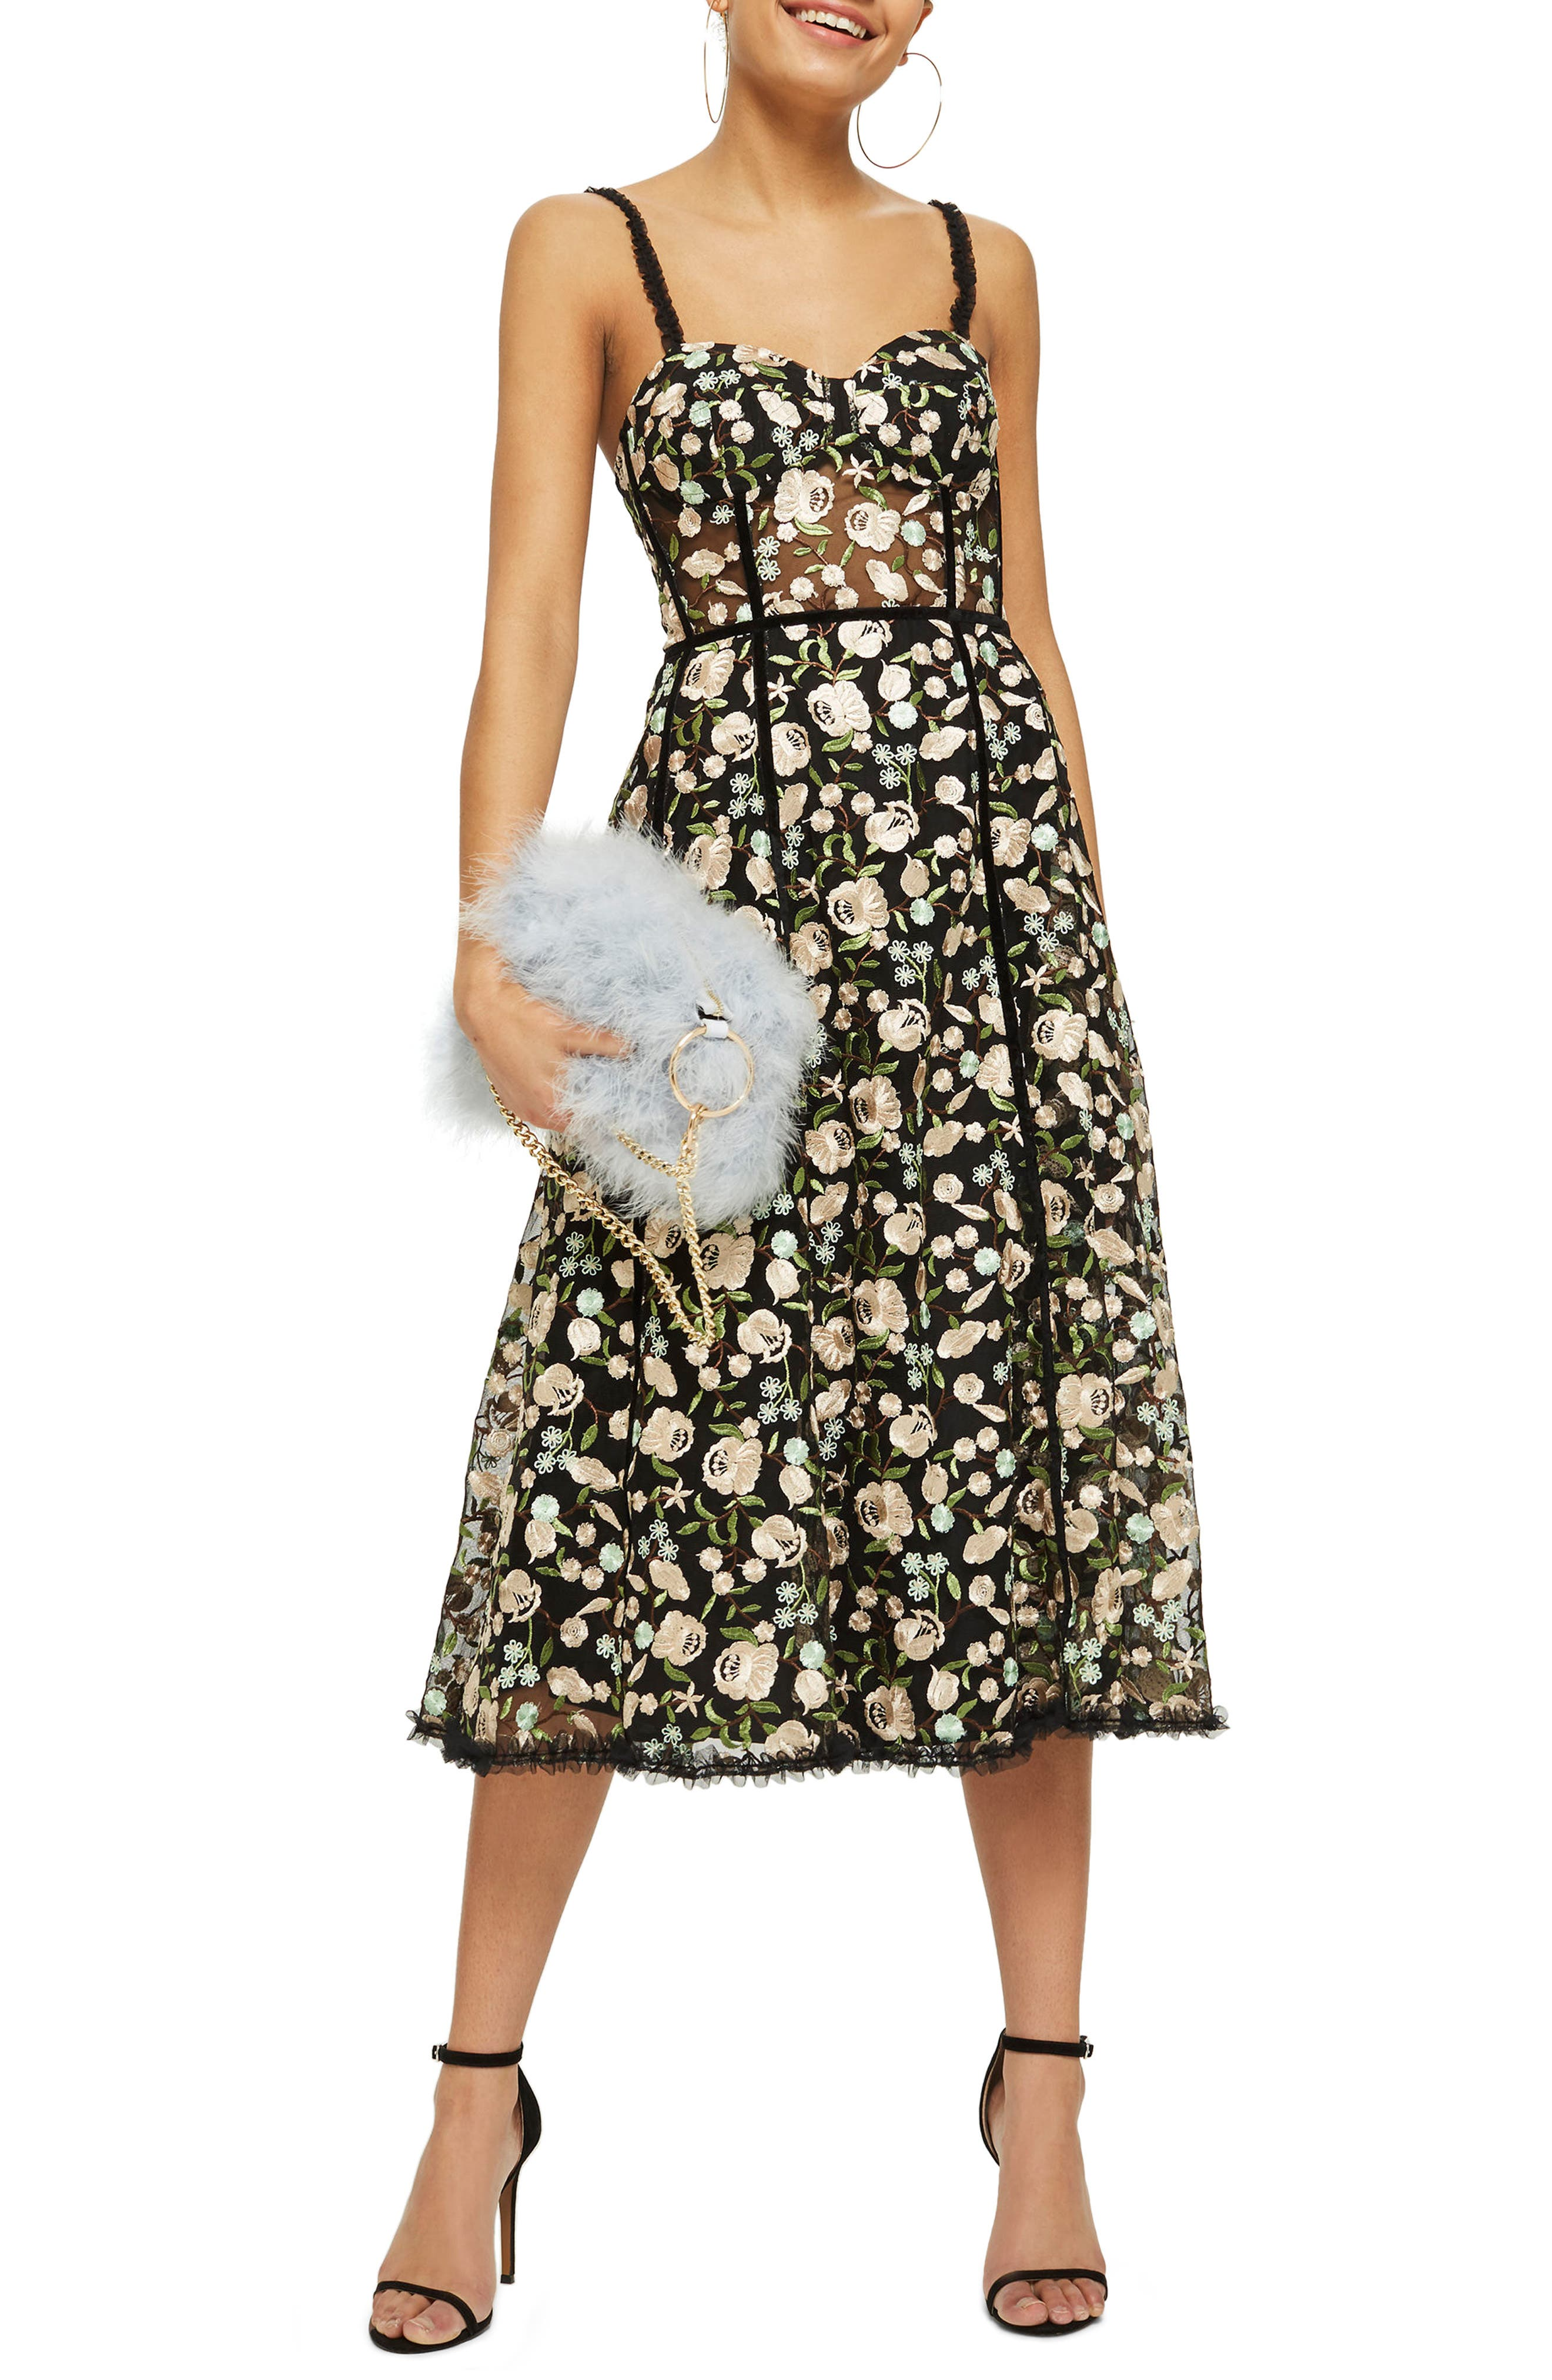 Topshop Floral Corset Midi Dress